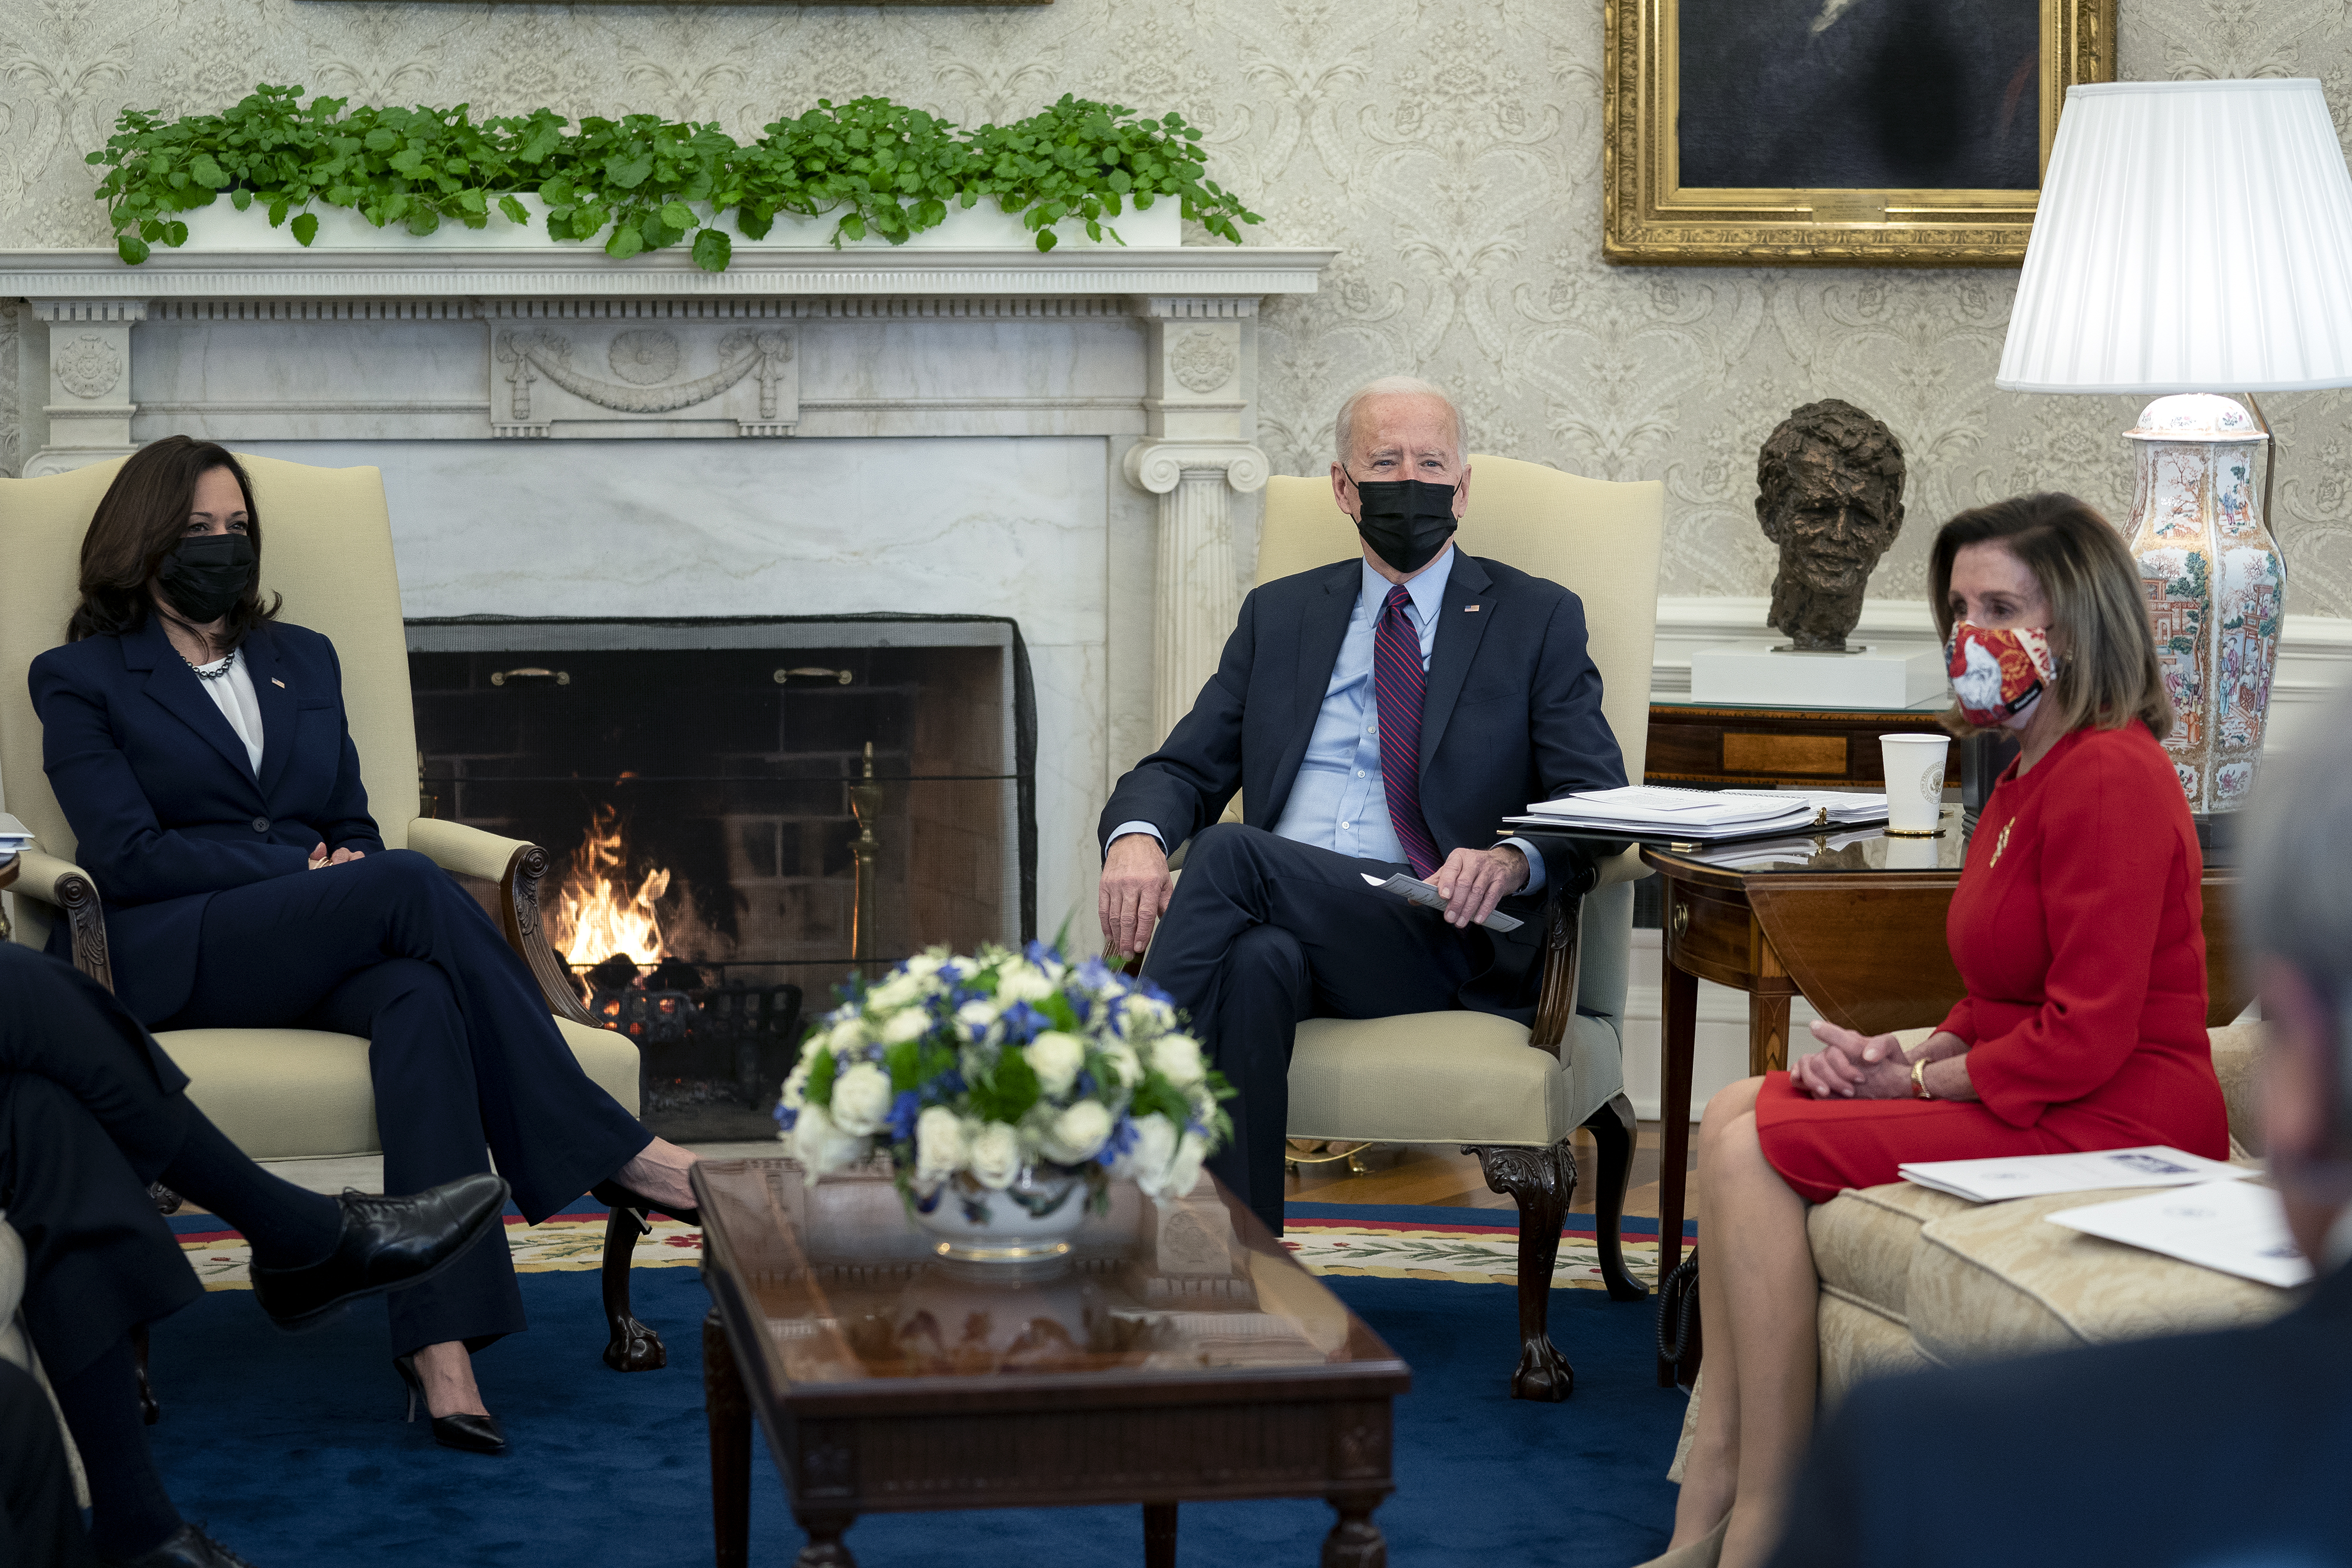 President Joe Biden, center, U.S. Vice President Kamala Harris, left, and U.S. House Speaker Nancy Pelosi, a Democrat from California, wear protective masks during a meeting in the Oval Office of the White House in Washington, D.C., U.S., on Friday, Feb. 5, 2021. The Senate voted 51-50 to adopt a budget blueprint for Biden's $1.9 trillion virus relief package following nearly 15 hours of wading through amendments from both parties.